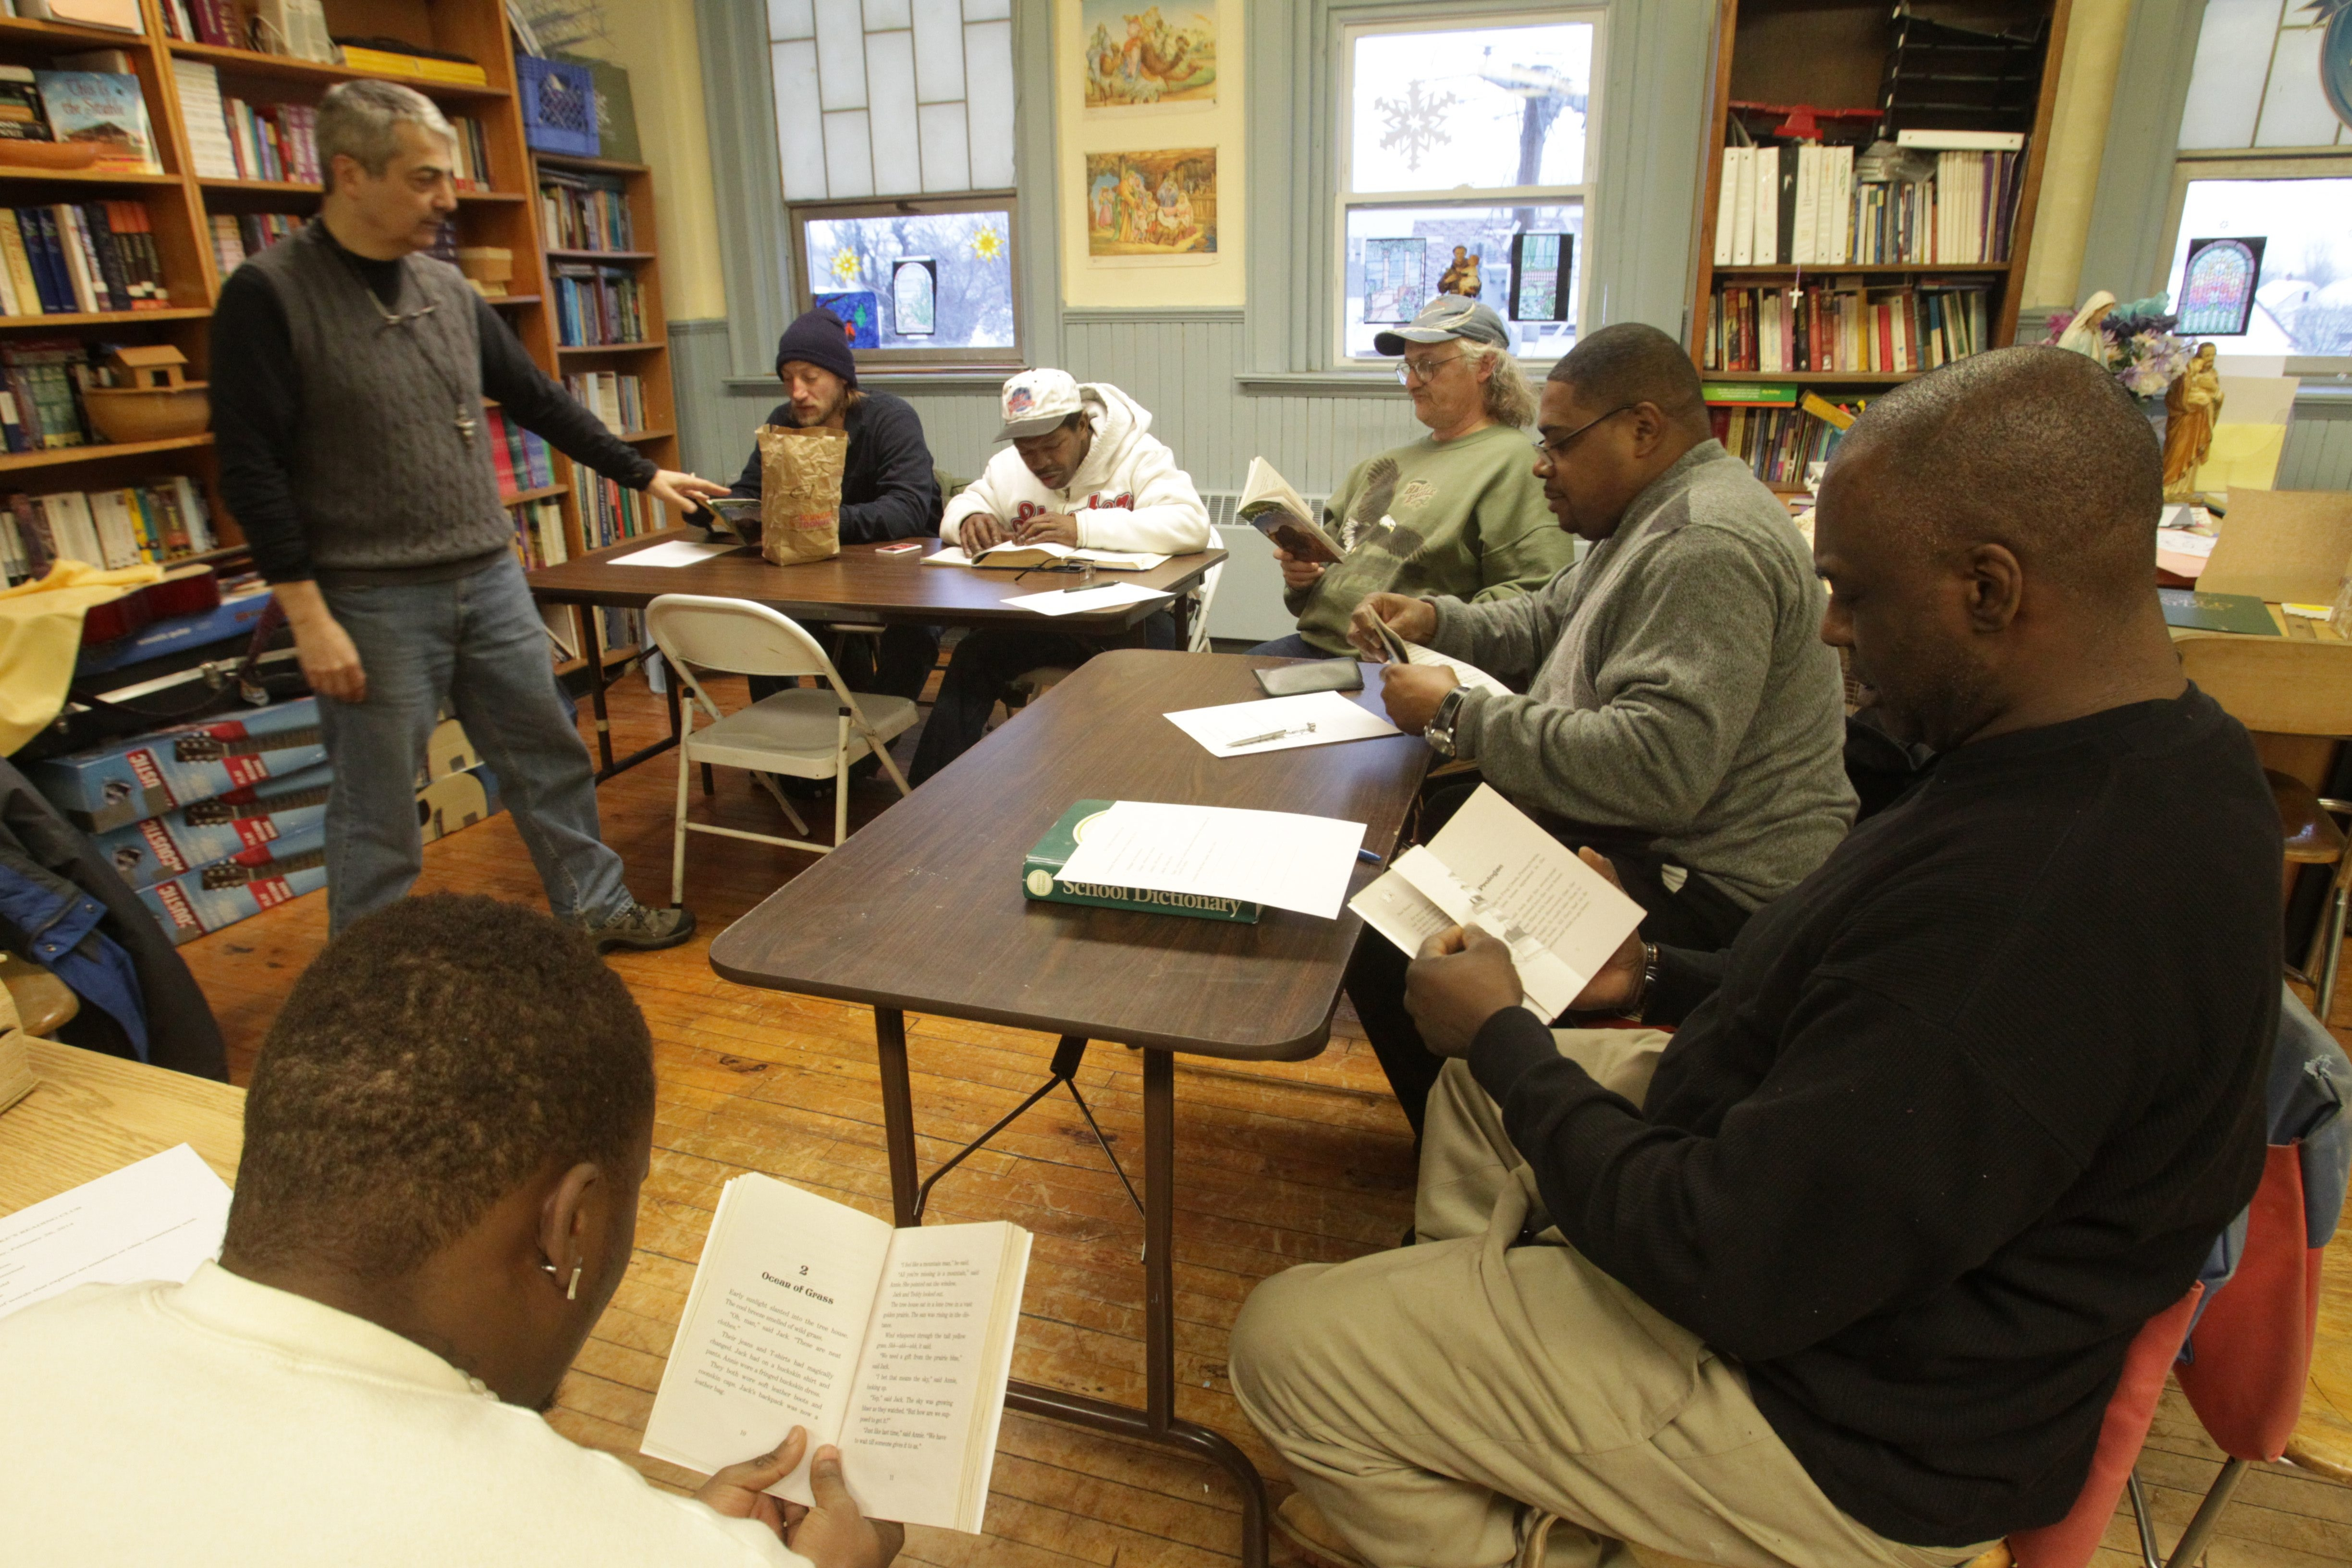 Mike Taheri teaches group of men to read at St. Luke's Mission of Mercy in Buffalo. The adult reading group is helping many people who have struggled in their lives because they have very little education.